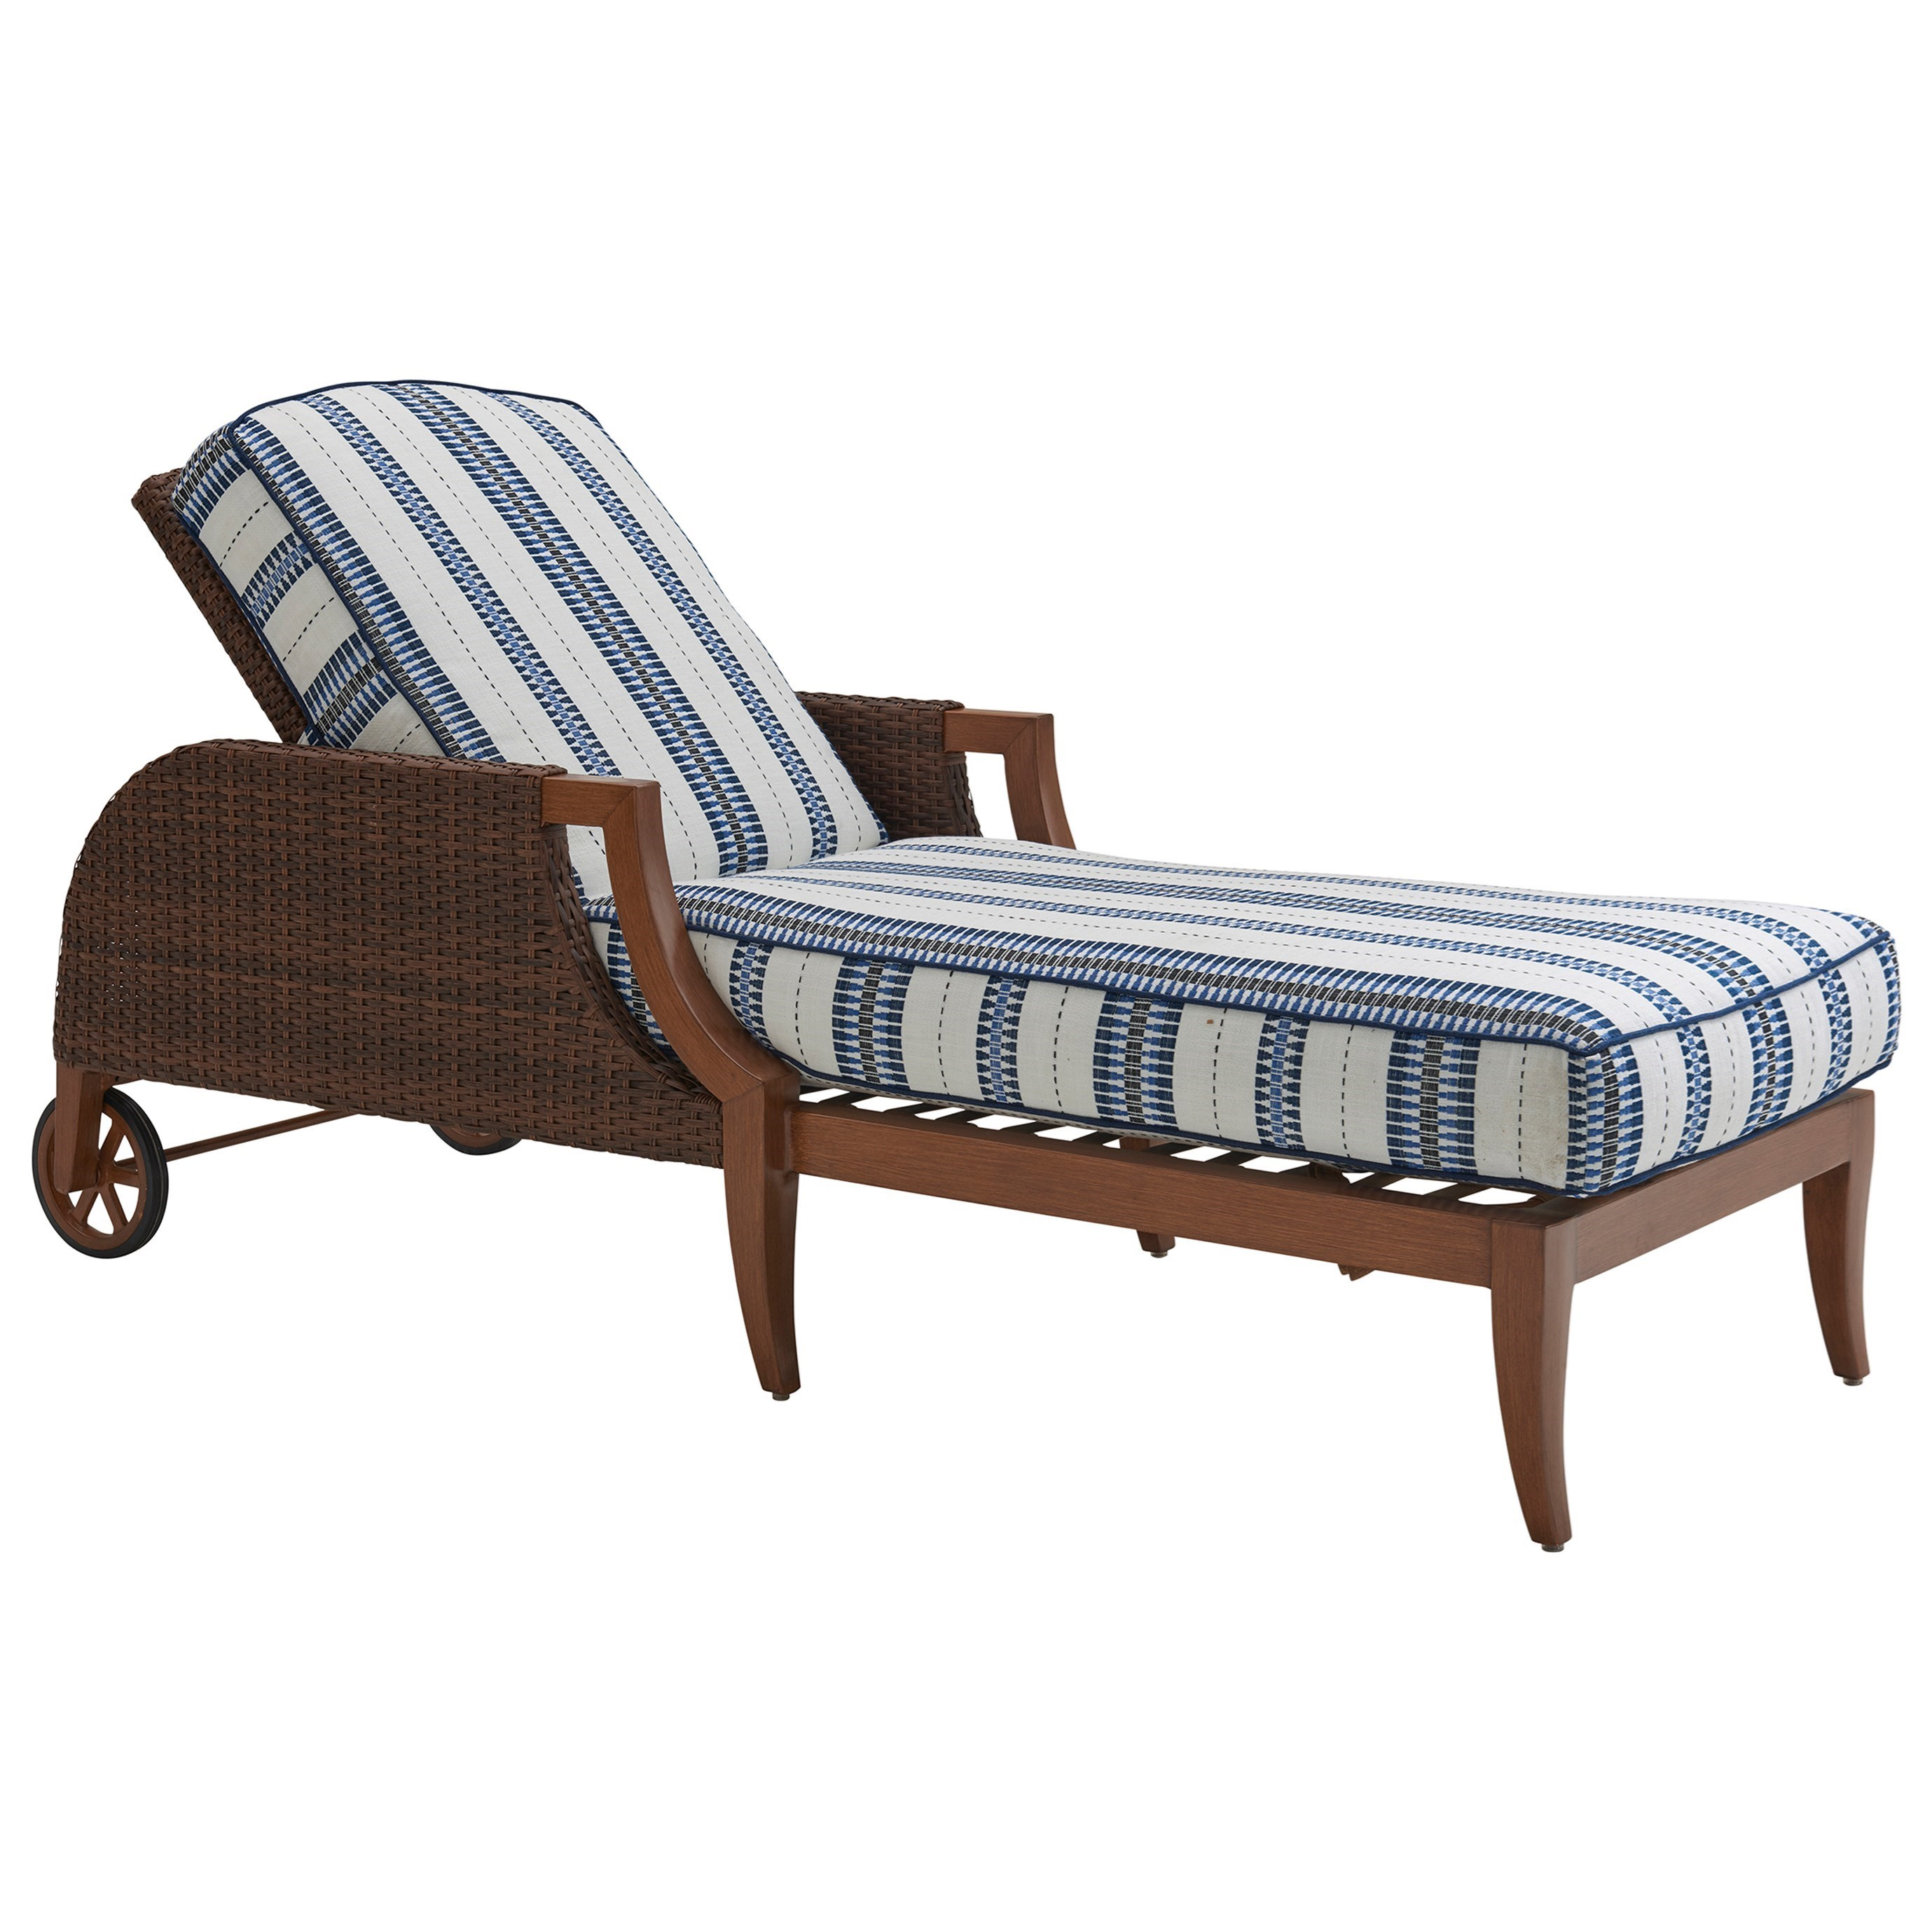 Harbor Isle Chaise Lounge by Tommy Bahama Outdoor Living at Baer's Furniture